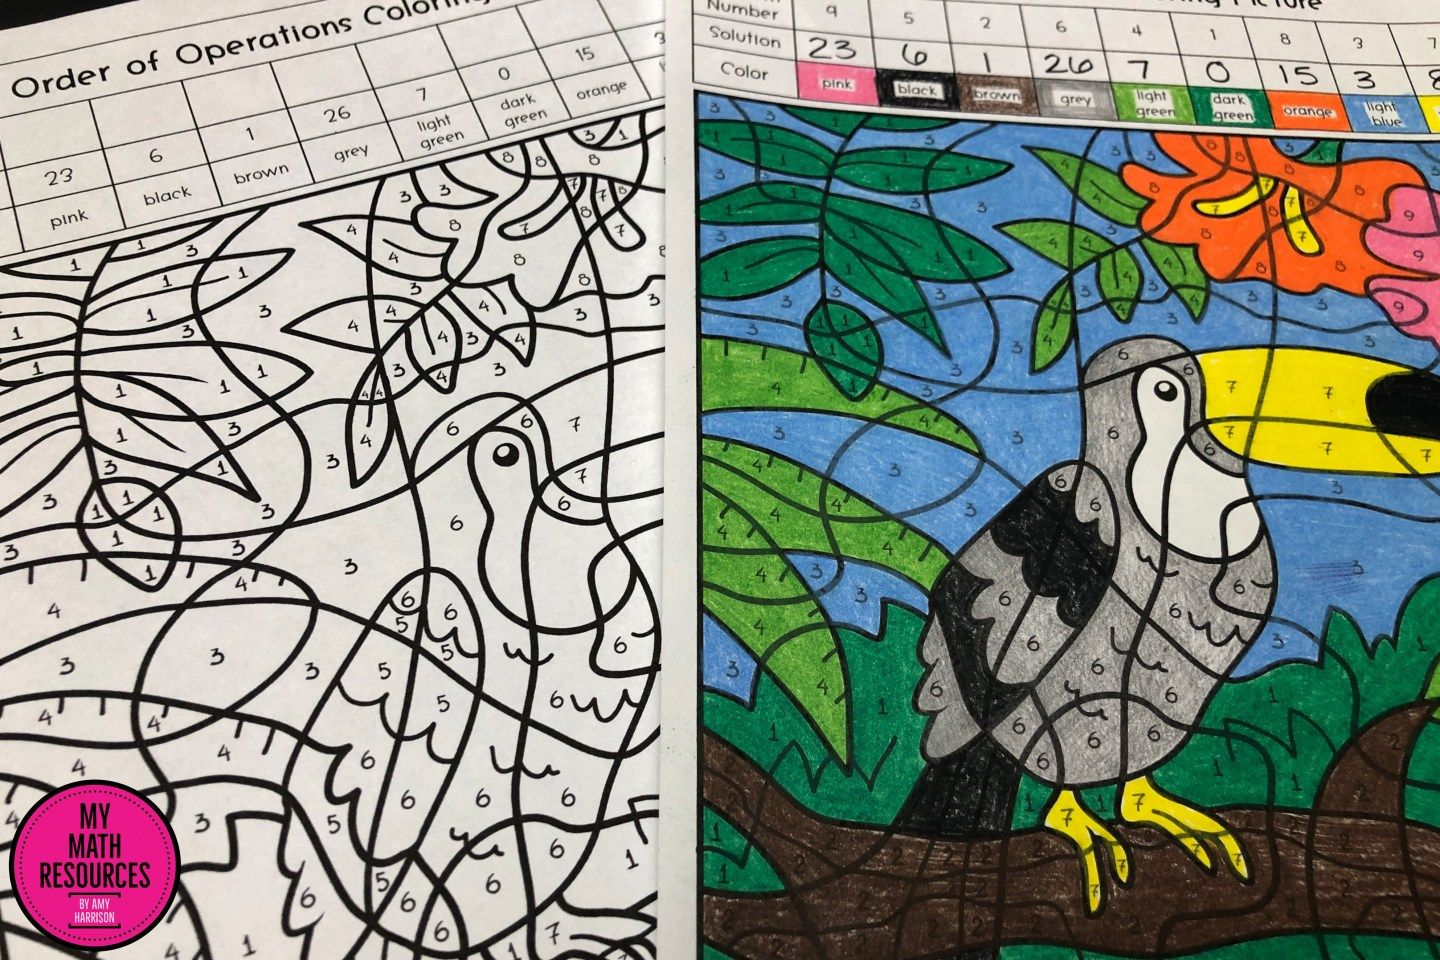 Order Of Operations Toucan Coloring Picture 5 Oa A 1